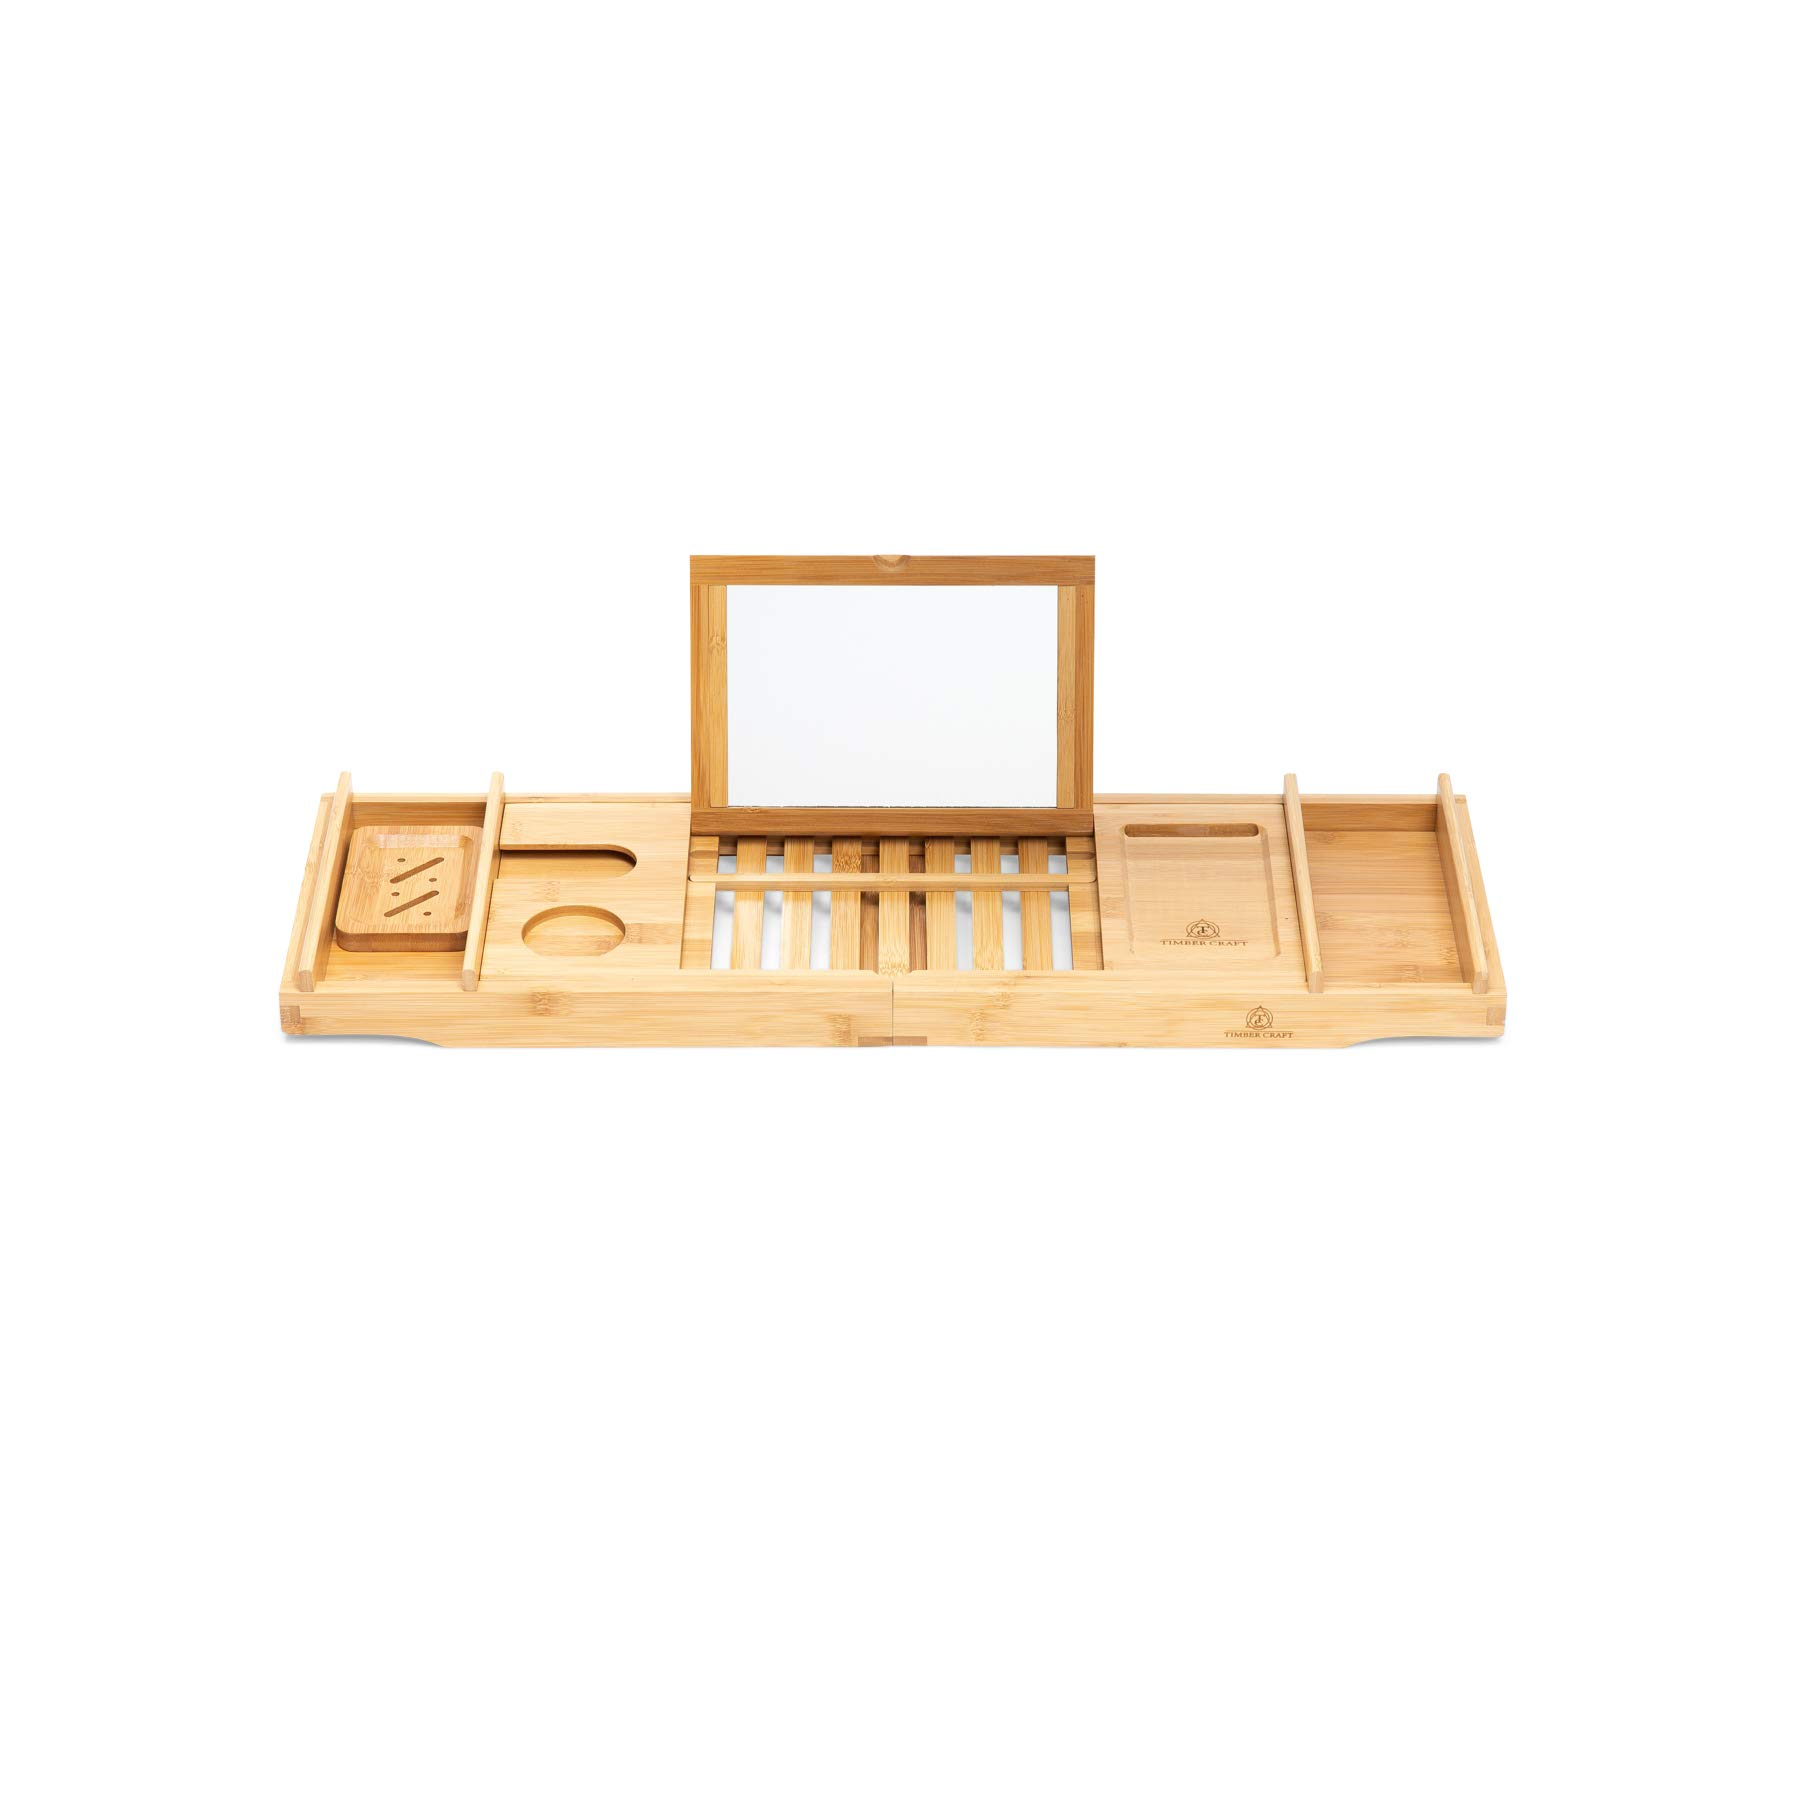 Timbercraft Premium Bamboo Bathtub Caddy Tray with Mirror & Free Soap Dish - Supreme Luxury - Water & Mildew Resistant by Timbercraft (Image #3)